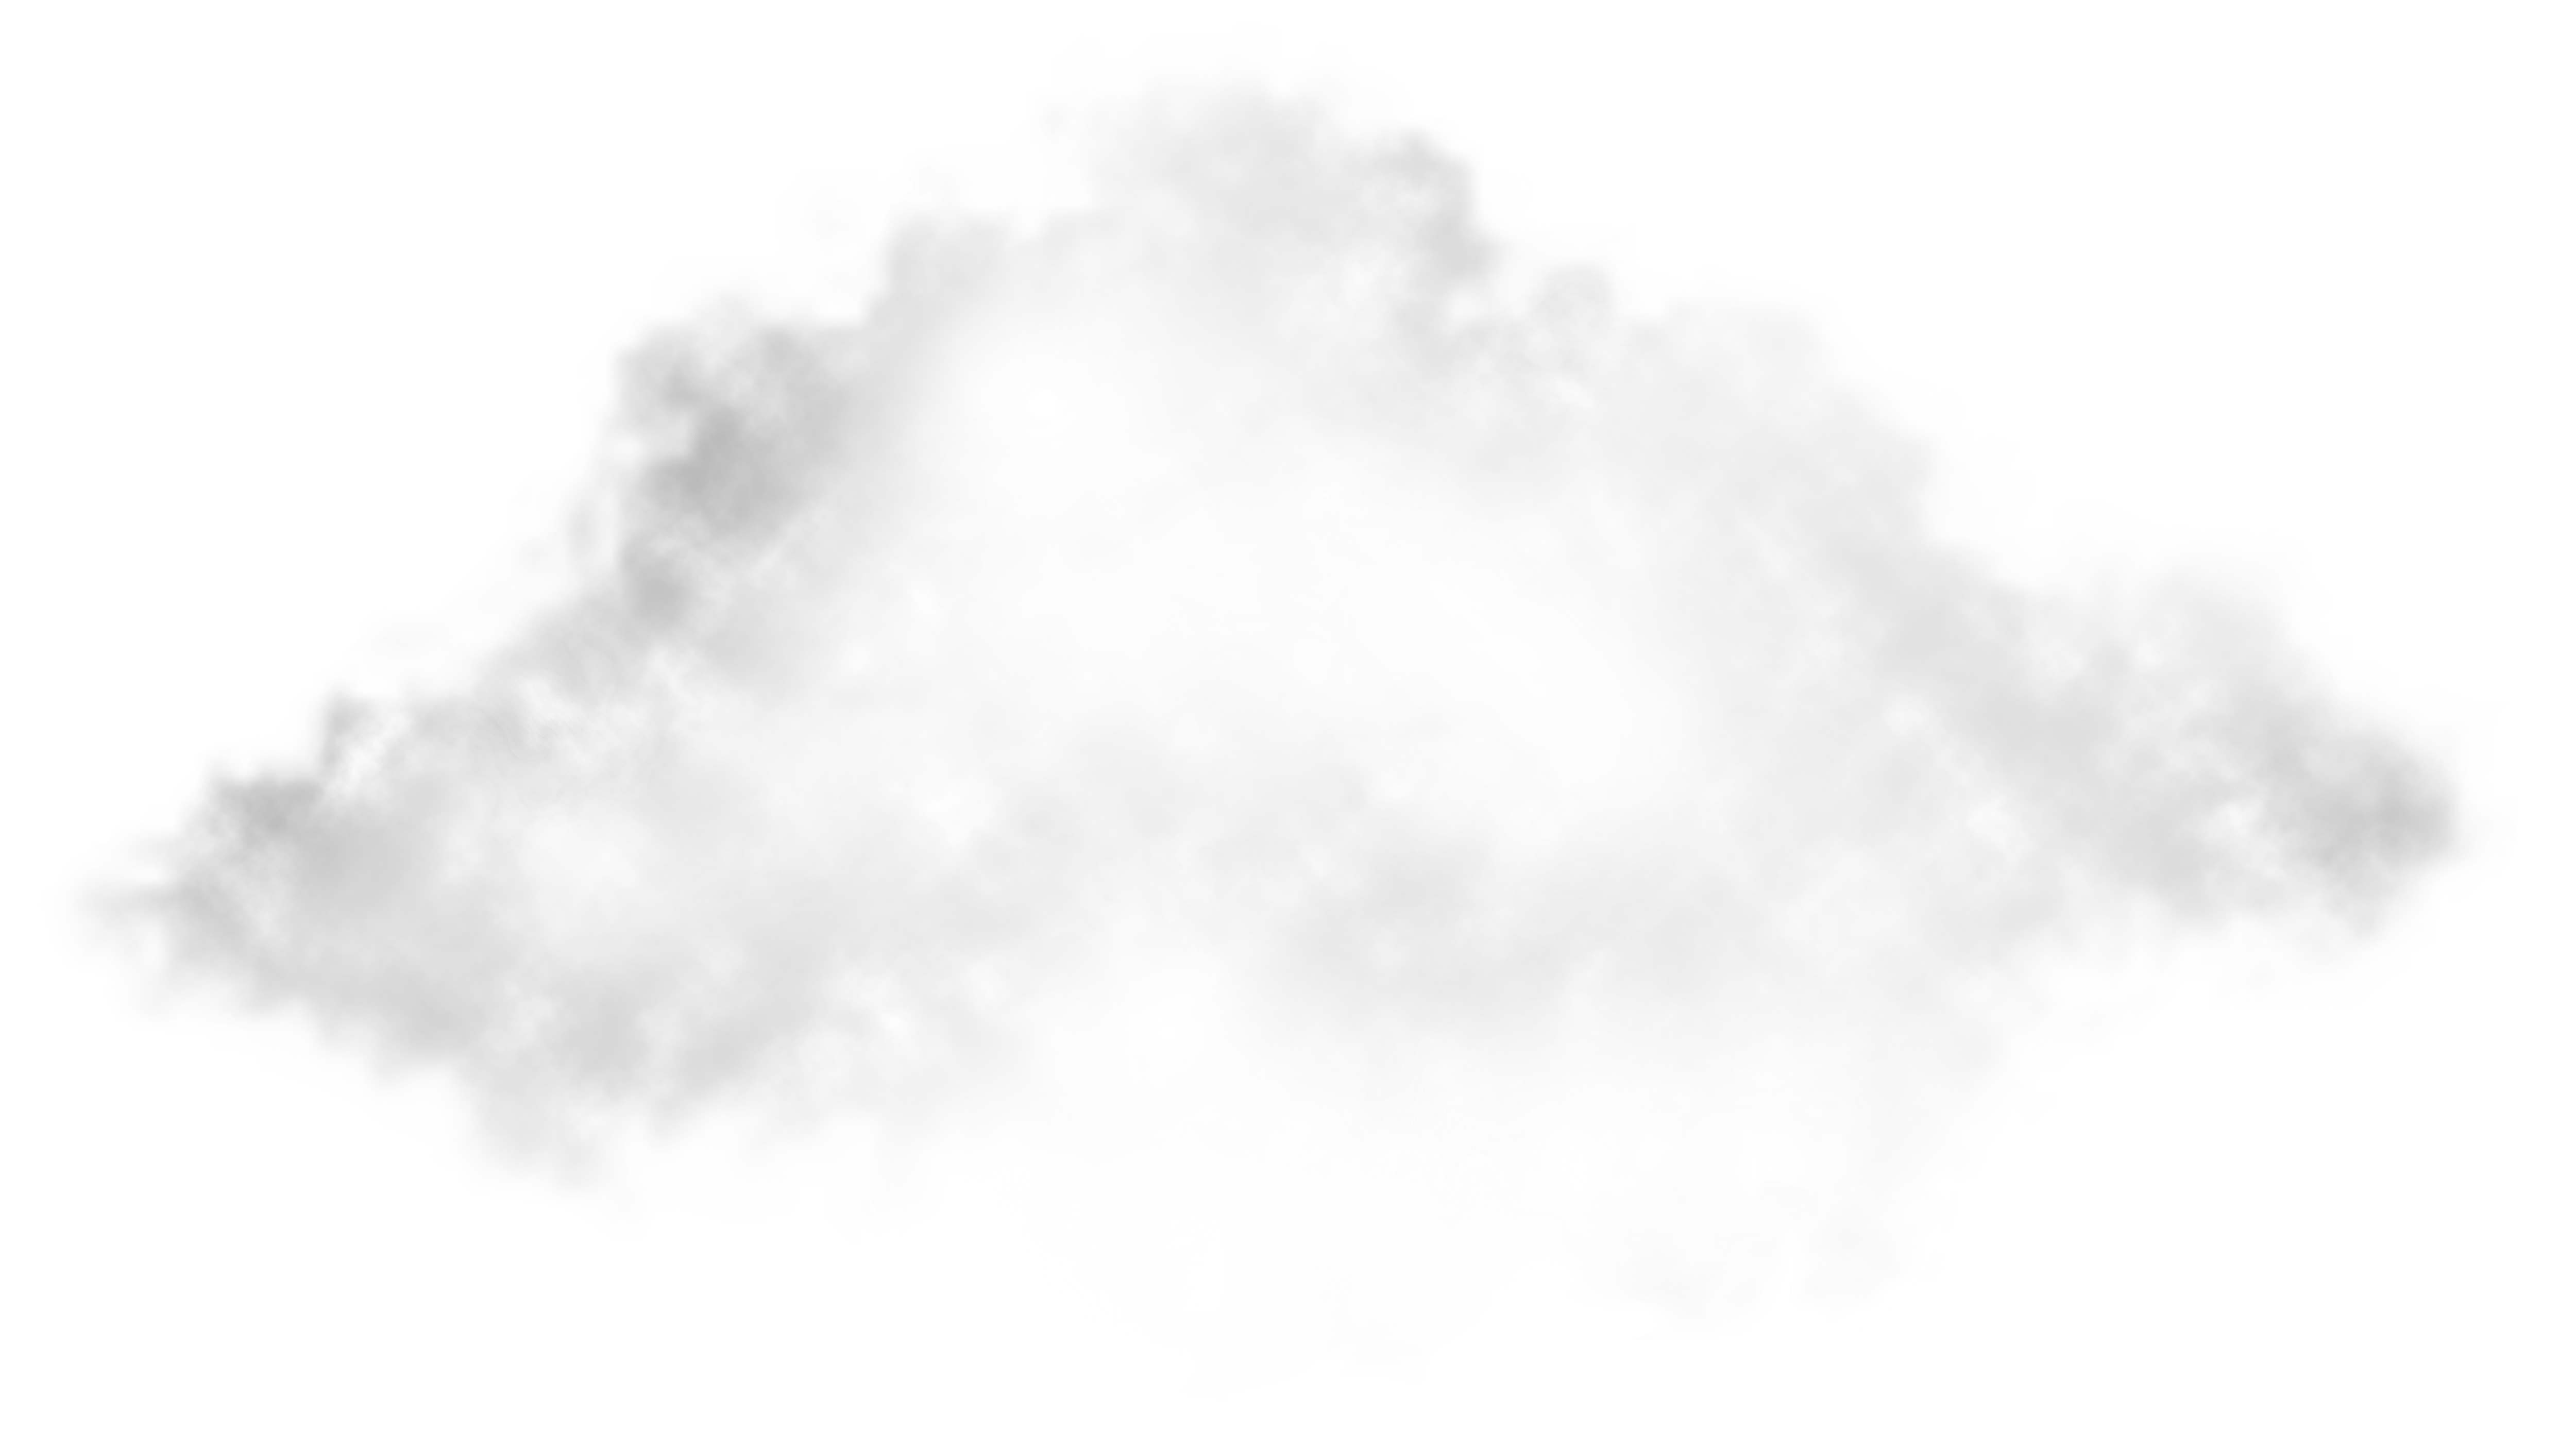 Clouds Free Transparent Png 23432